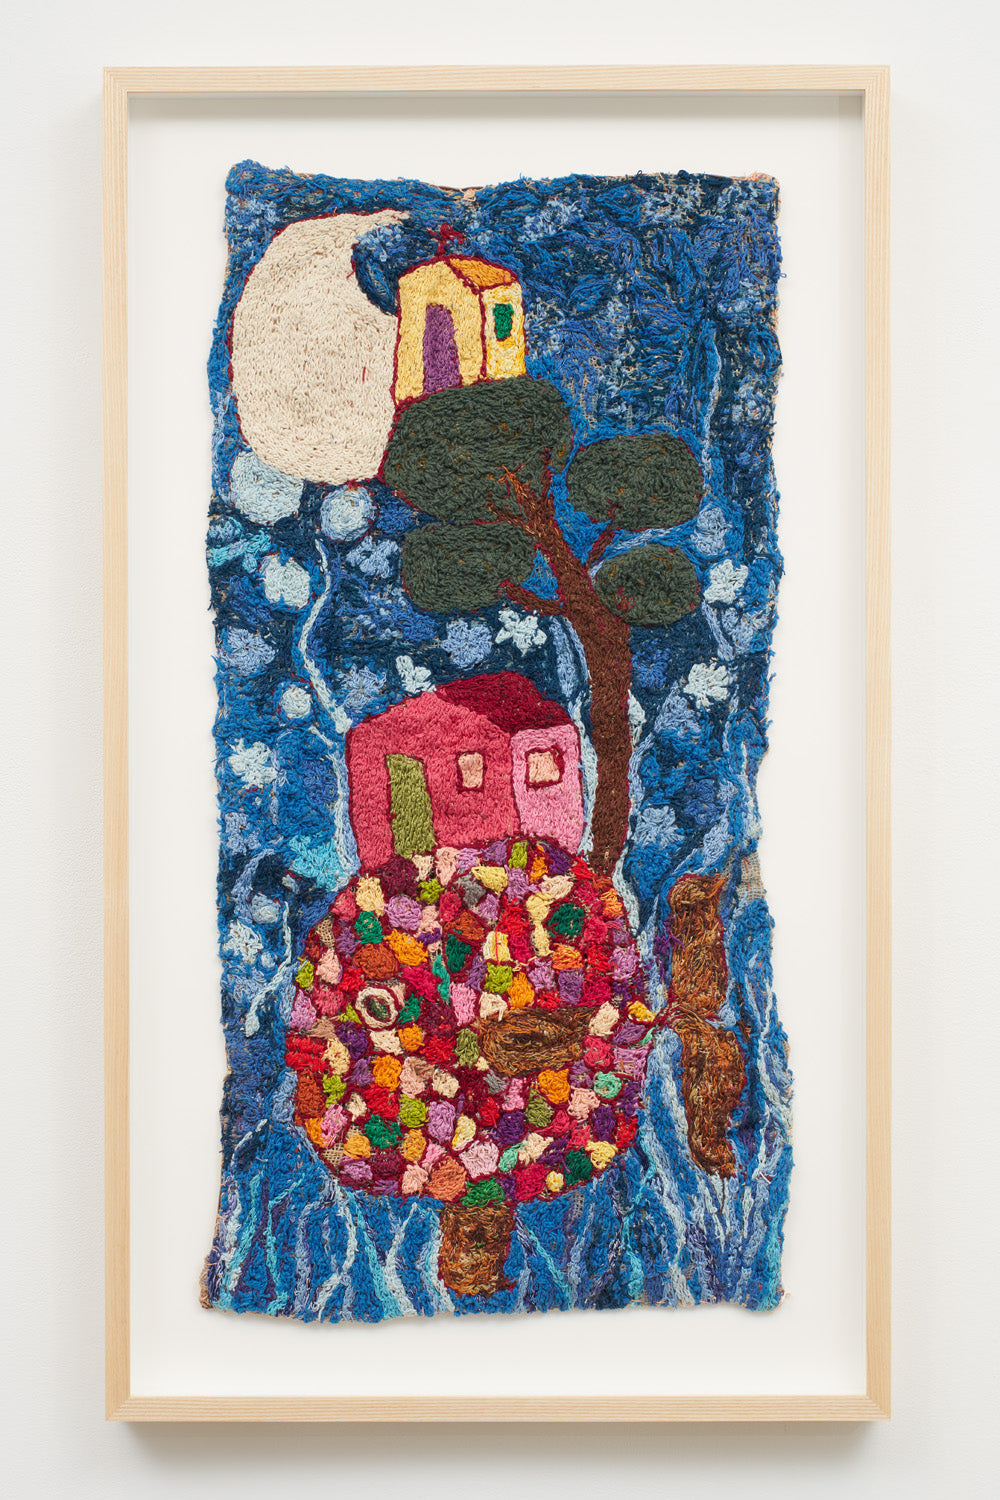 Untitled (Fish, tree, houses and moon)